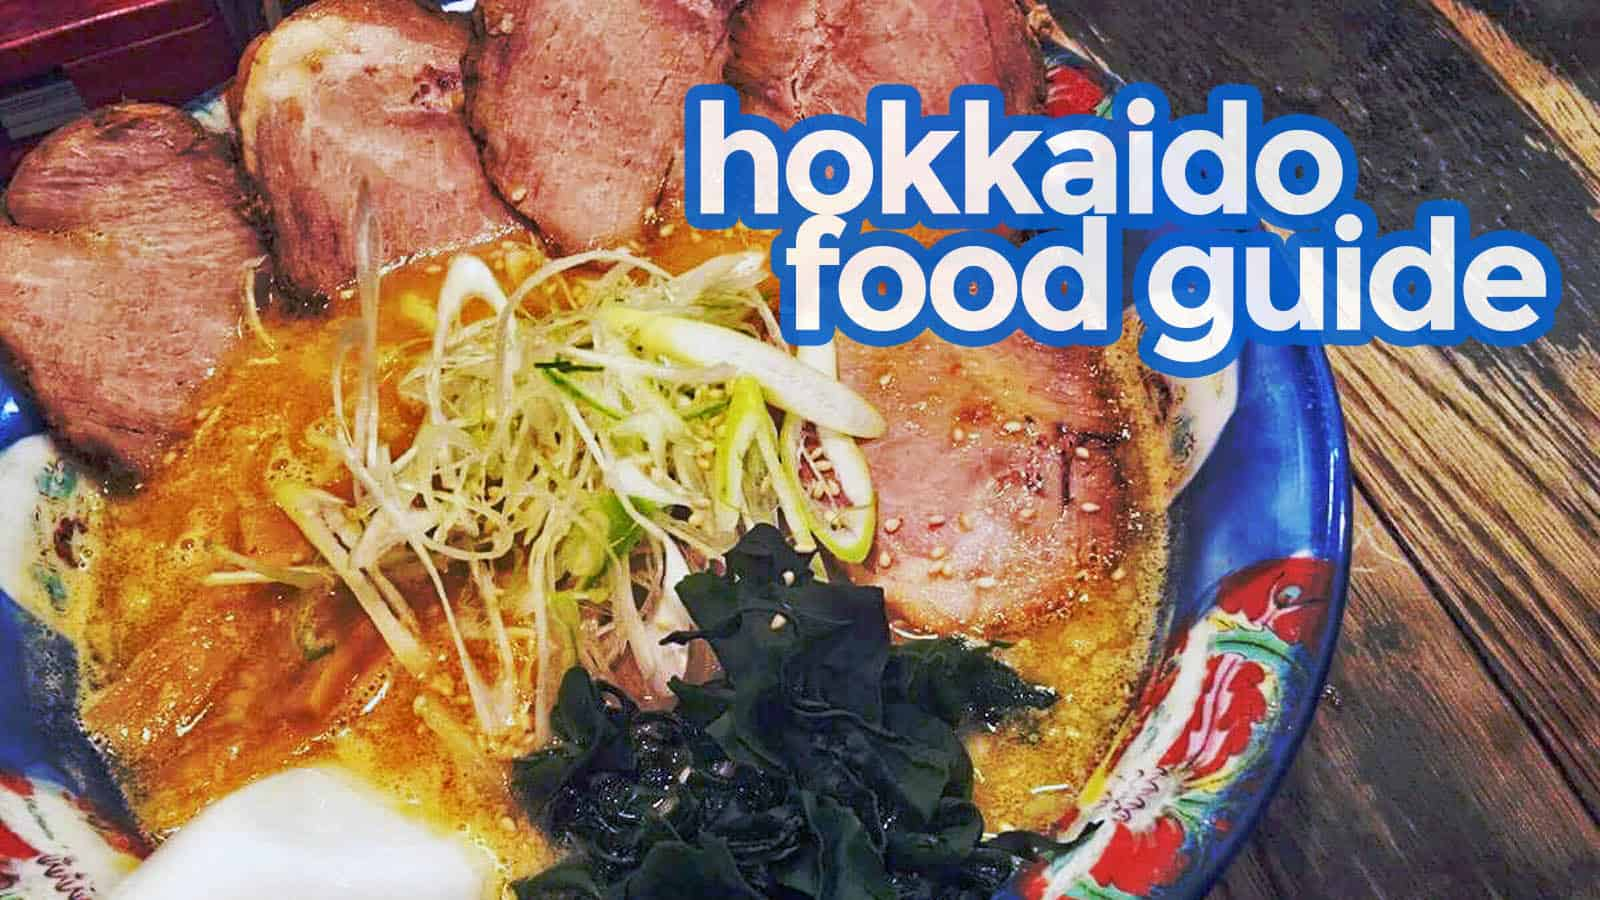 HOKKAIDO FOOD GUIDE: What and Where to Eat